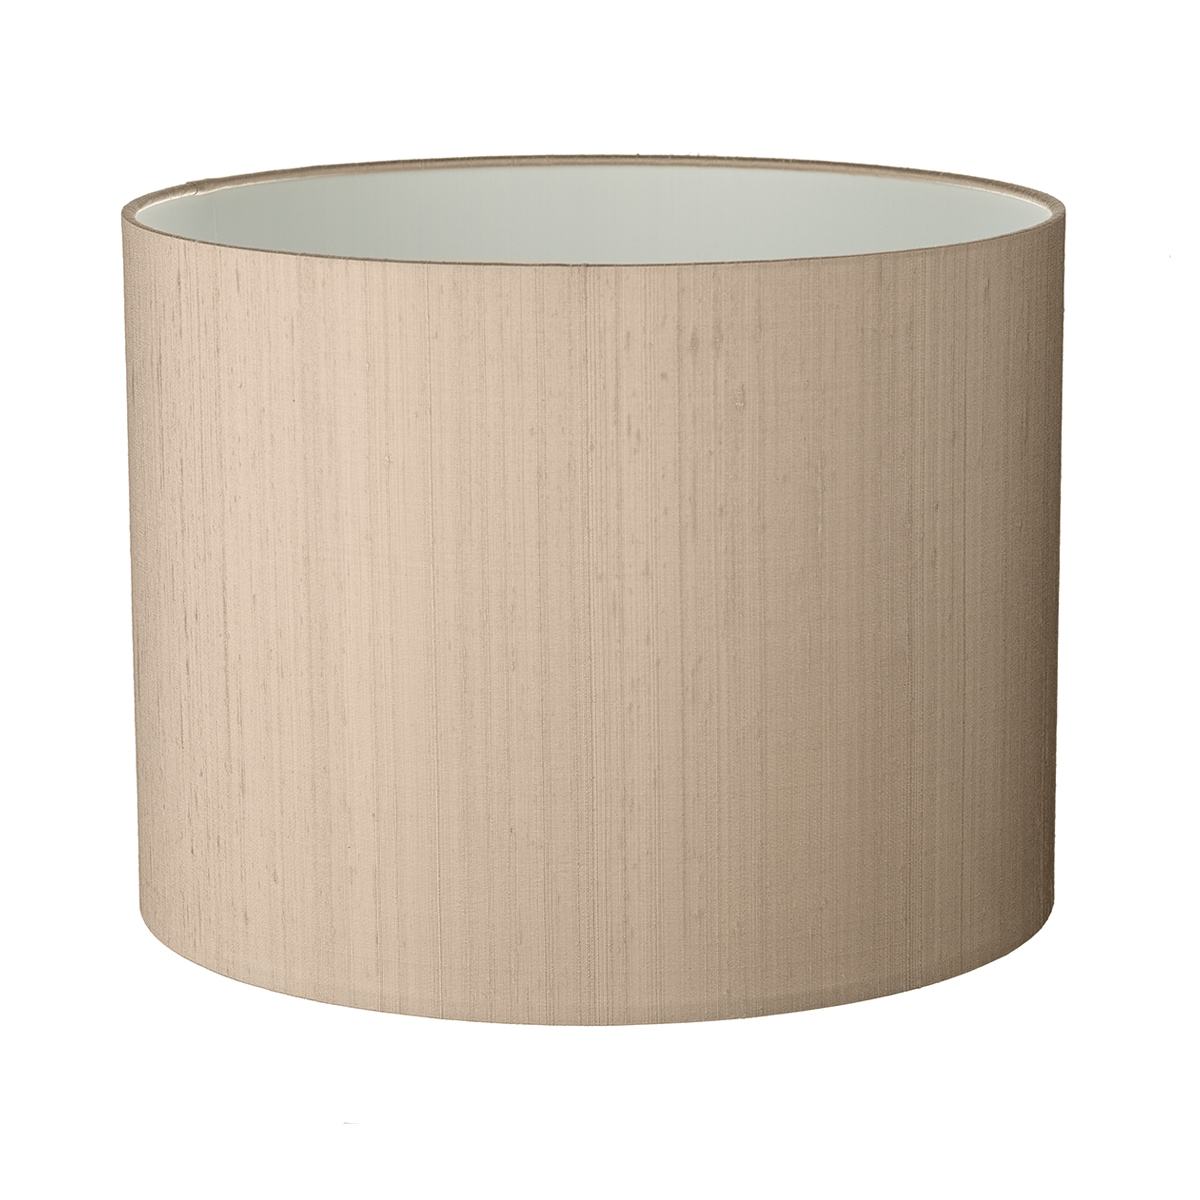 Drum Medium 13cm Shade Two Tone